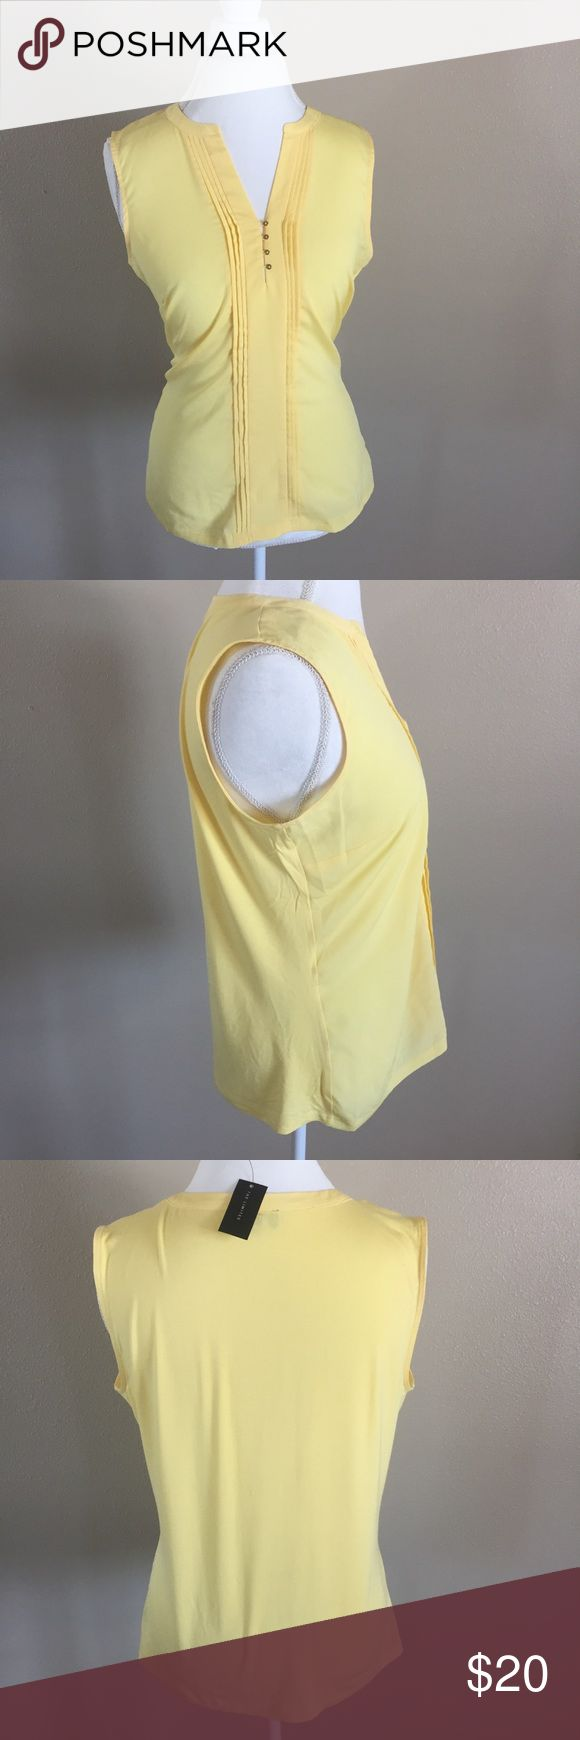 🆕 The Limited Yellow Tank Top NWT Adorable yellow tank top perfect for work, vacation or a night out. NWT. Size L. No trades. The Limited Tops Tank Tops